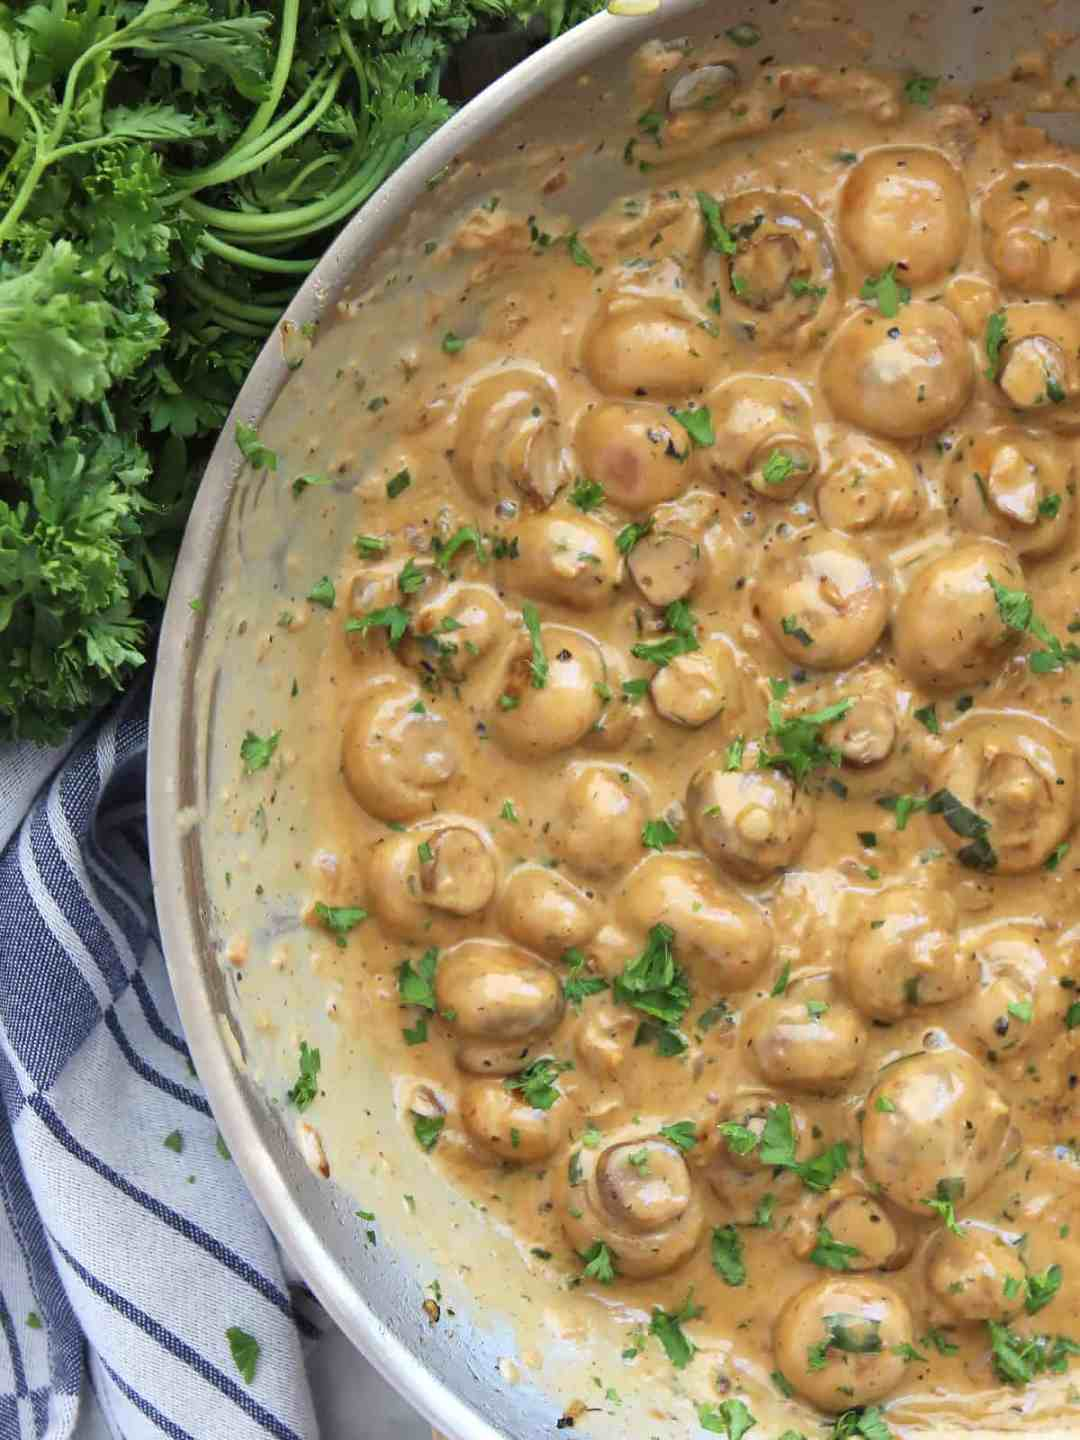 Creamy garlic mushrooms in a skillet next to a bunch of fresh herbs